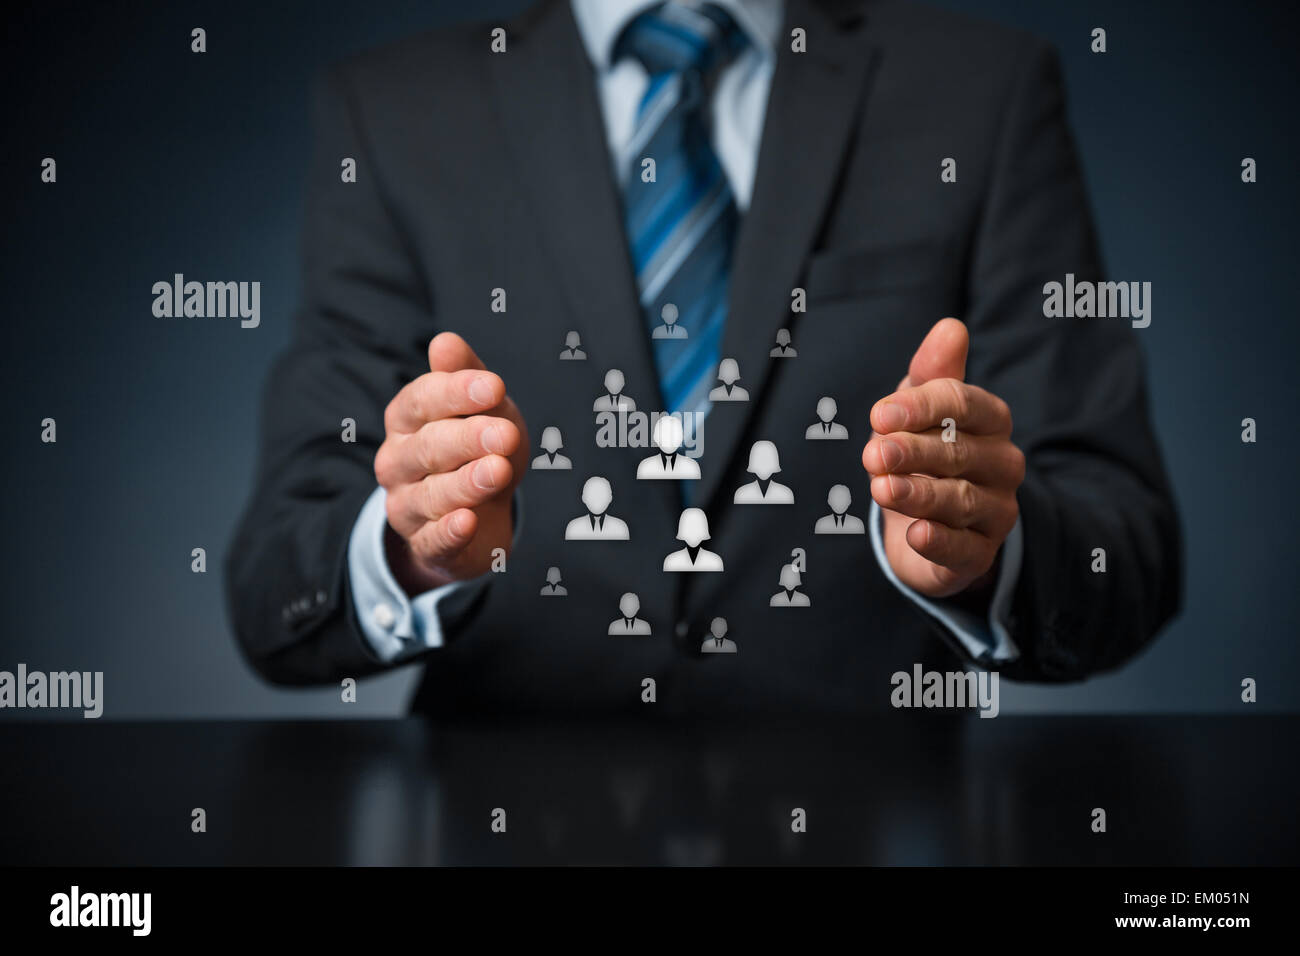 Customer care, care for employees, labor union, life insurance, customer relationship management (CRM) and human - Stock Image